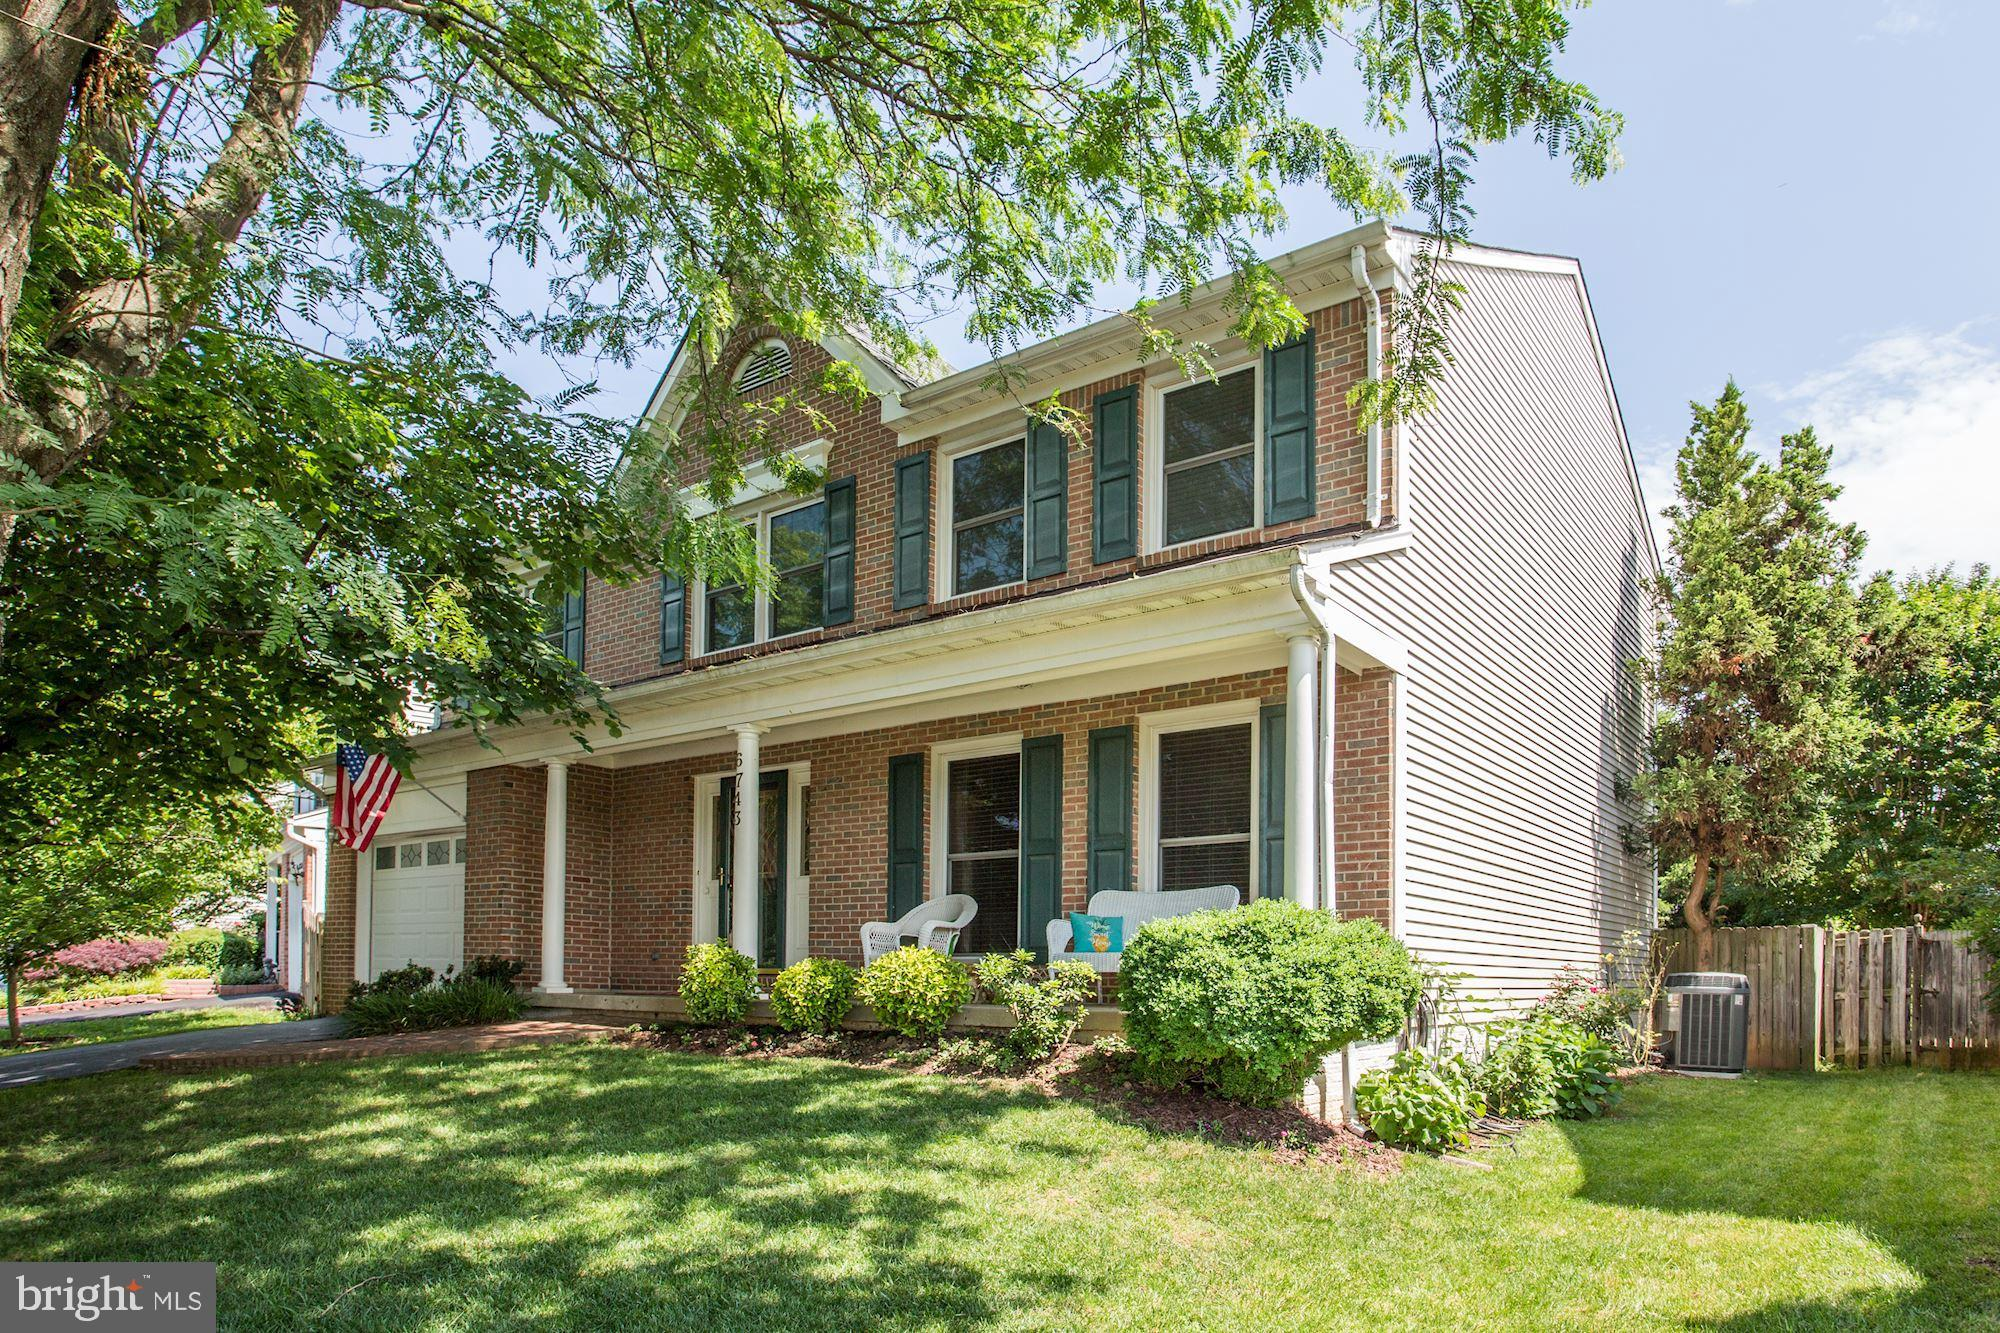 Back on the market! Open House this Saturday, June 8th from 11am-1pm.  Beautiful, must see home in Landsdowne! Home boasts 4 bedrooms upstairs, custom closets, master bath w/double vanity, soaking tub, & walk-in shower. Spacious main level with eat in kitchen, separate dining room and a cozy family room with a fireplace. The backyard is perfect for entertaining! The basement includes a large rec room, full bath and bonus room/den.  Hardwood floors on the main level (refinished in 2017).  HOA includes: community pool, tennis, tot-lots, etc. Bus at corner to Springfield/Franconia Metro.  Landsdowne is close to Fort Belvoir.  Walk to Wegmen's and other great places to shop and eat!